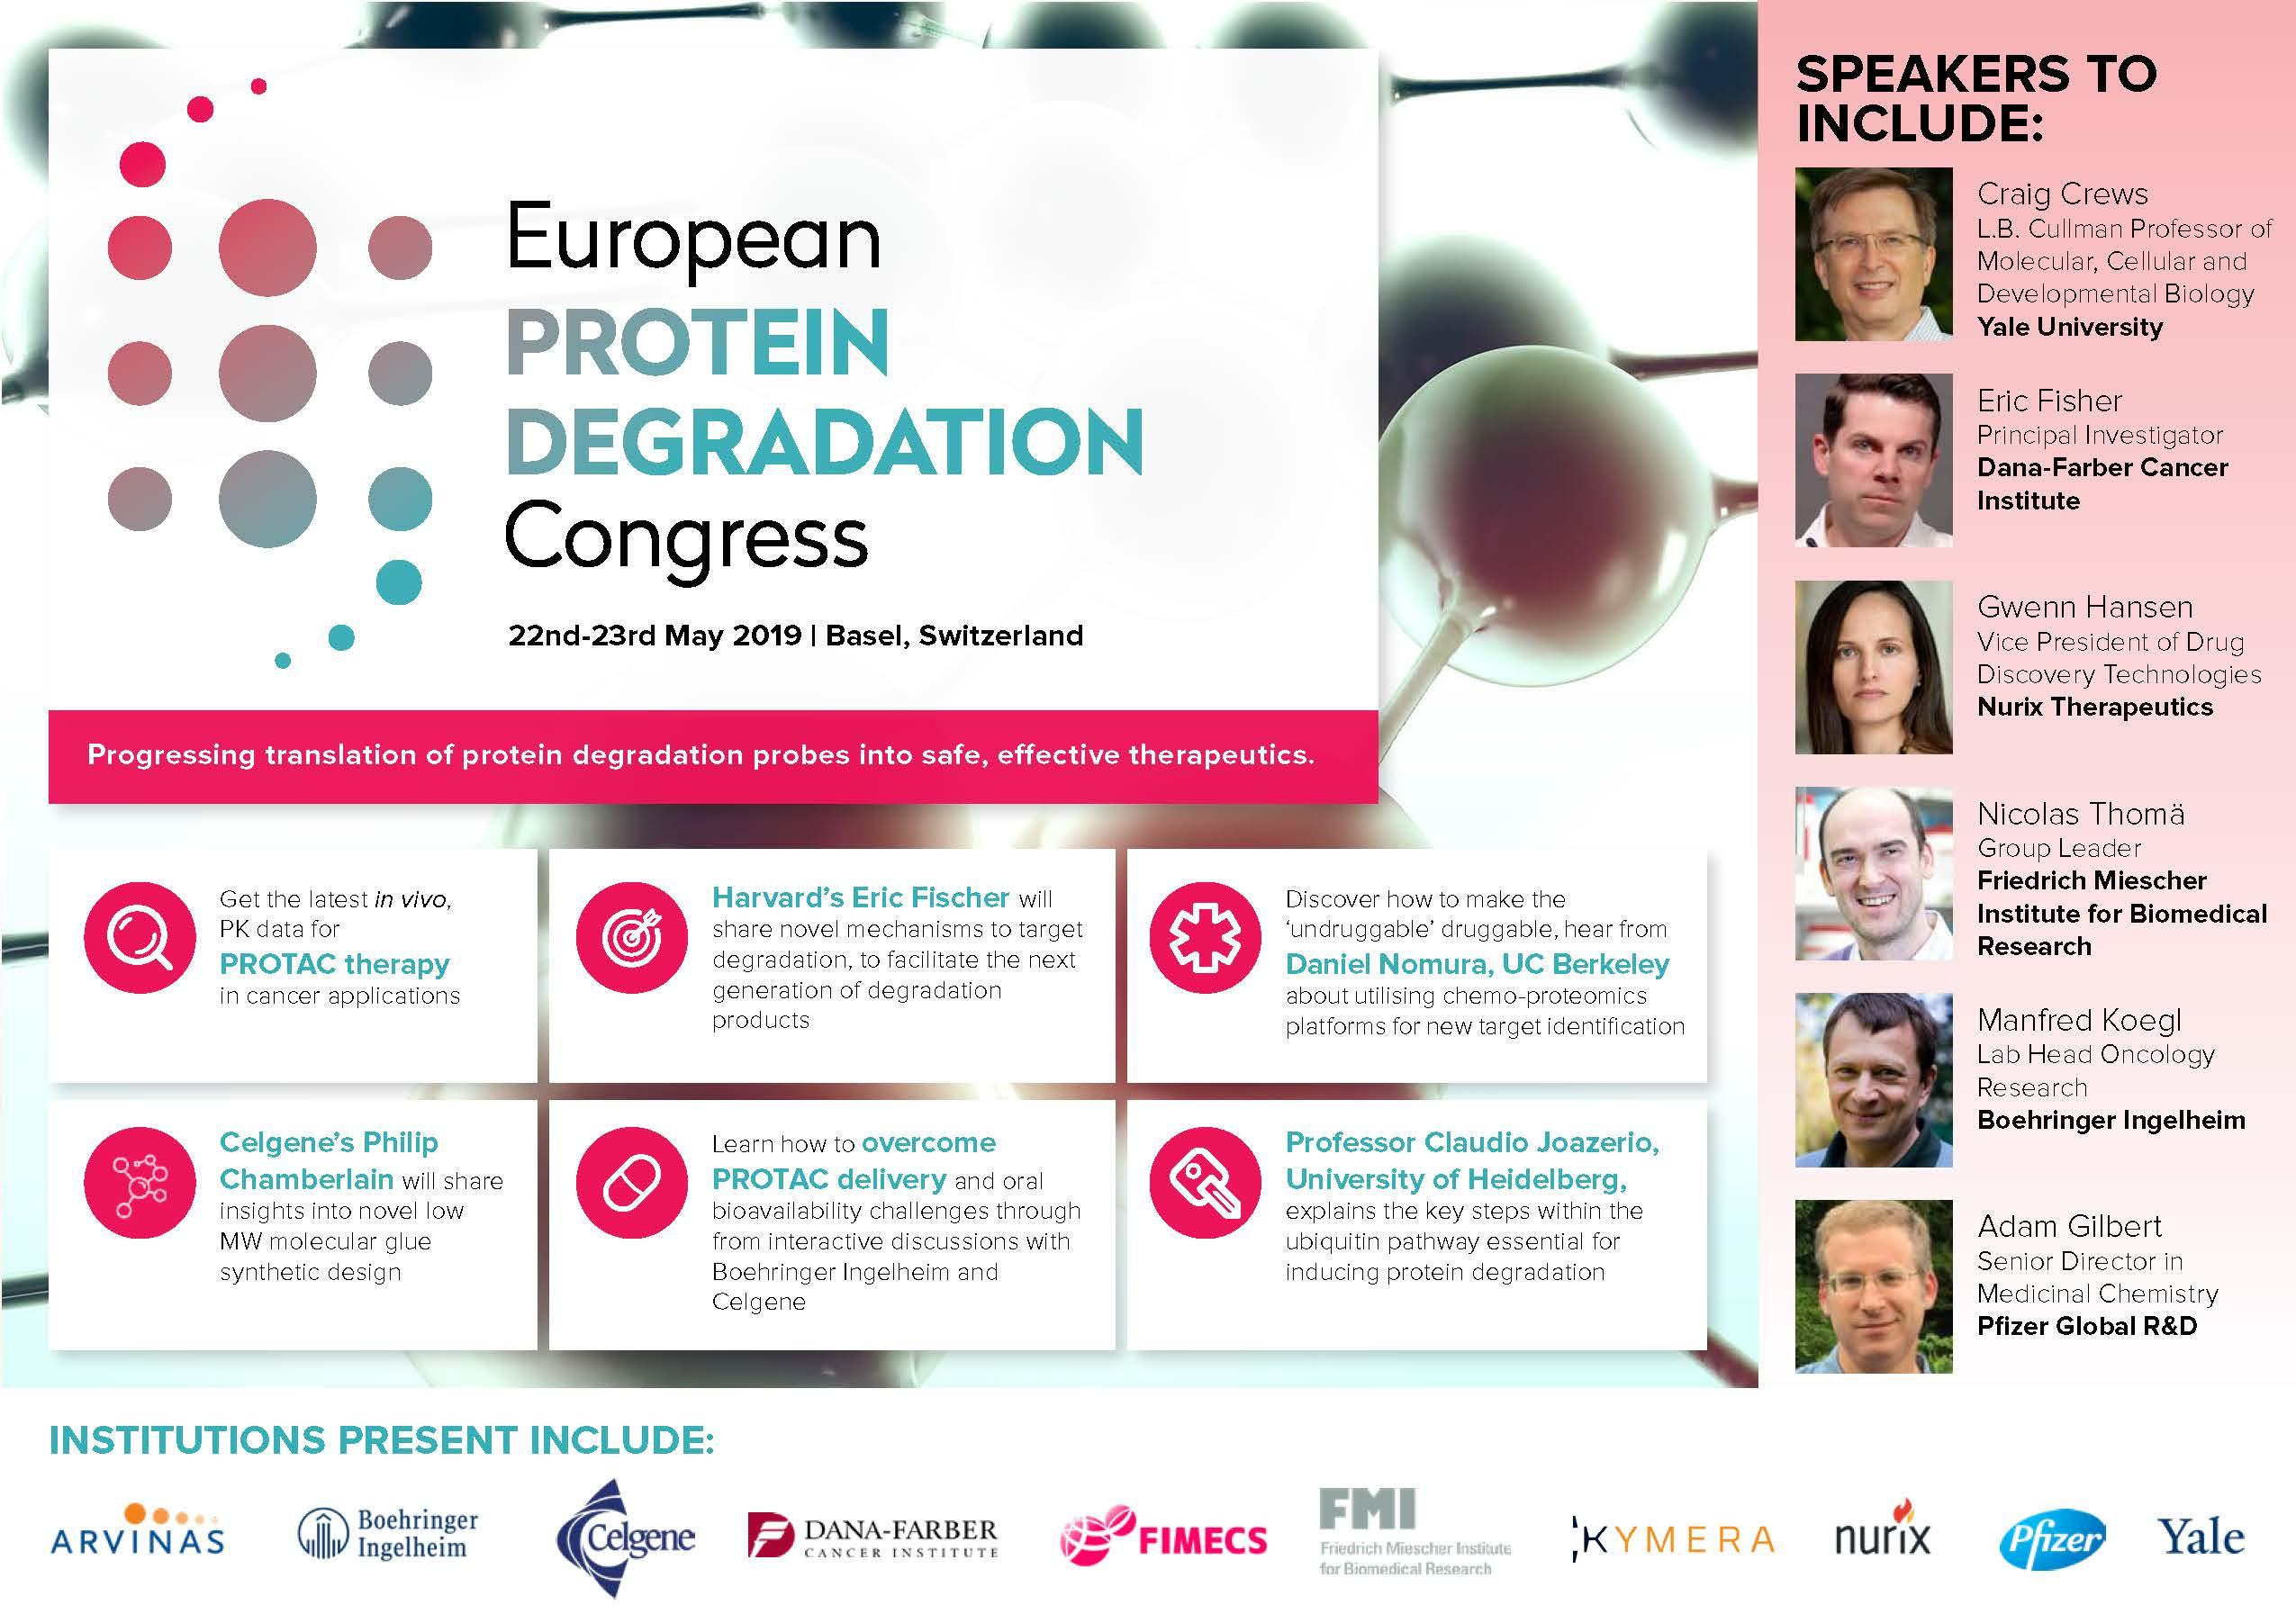 European Protein Degradation Congress